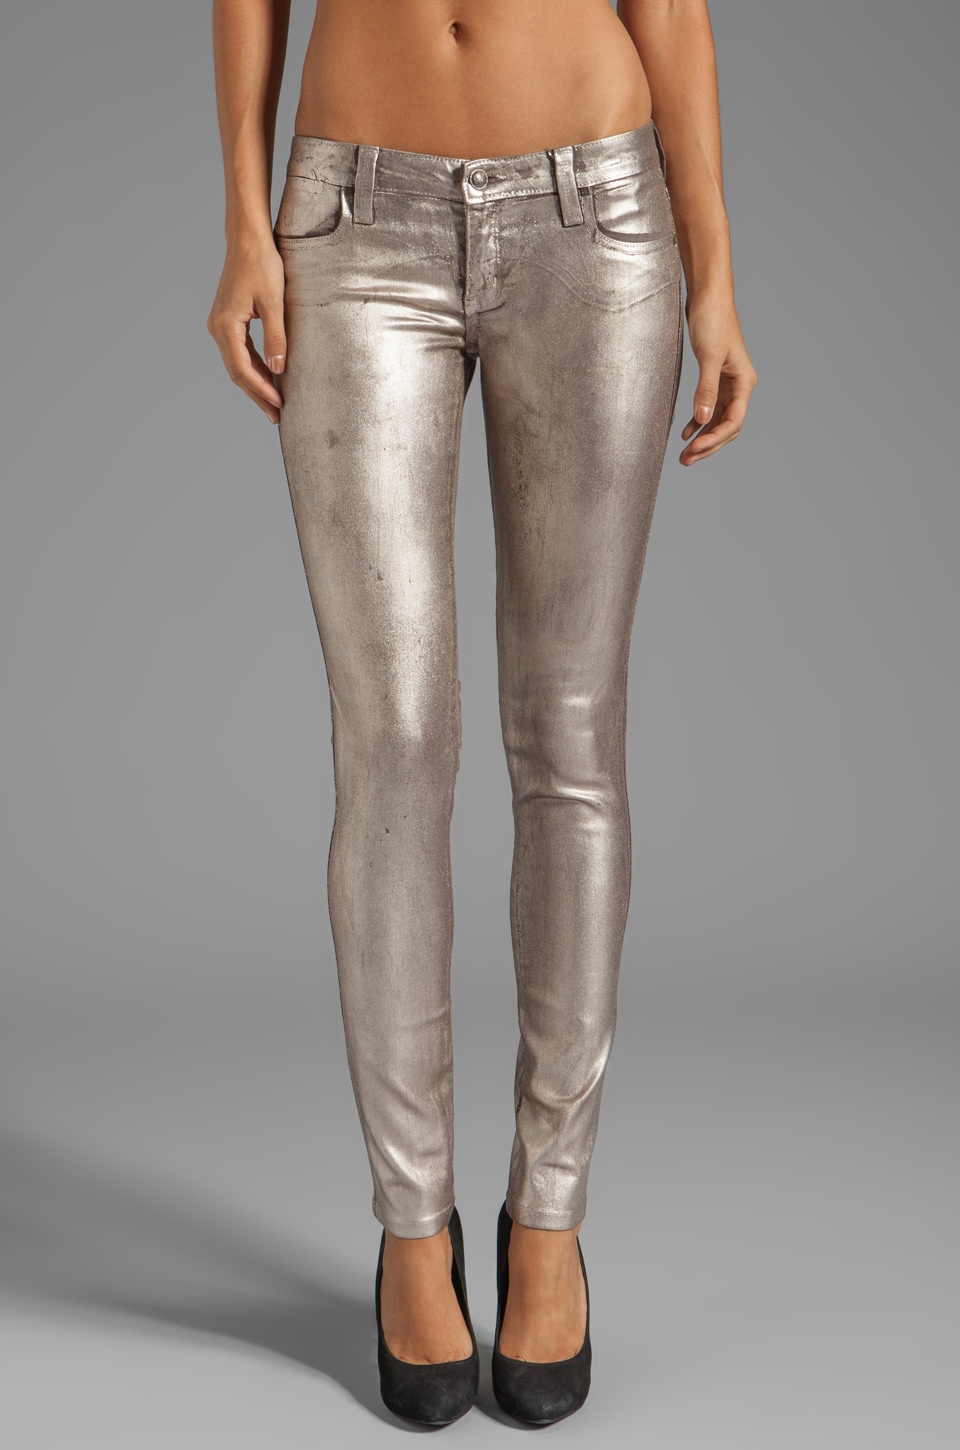 Frankie B. Jeans My BFF Jegging in Chrome